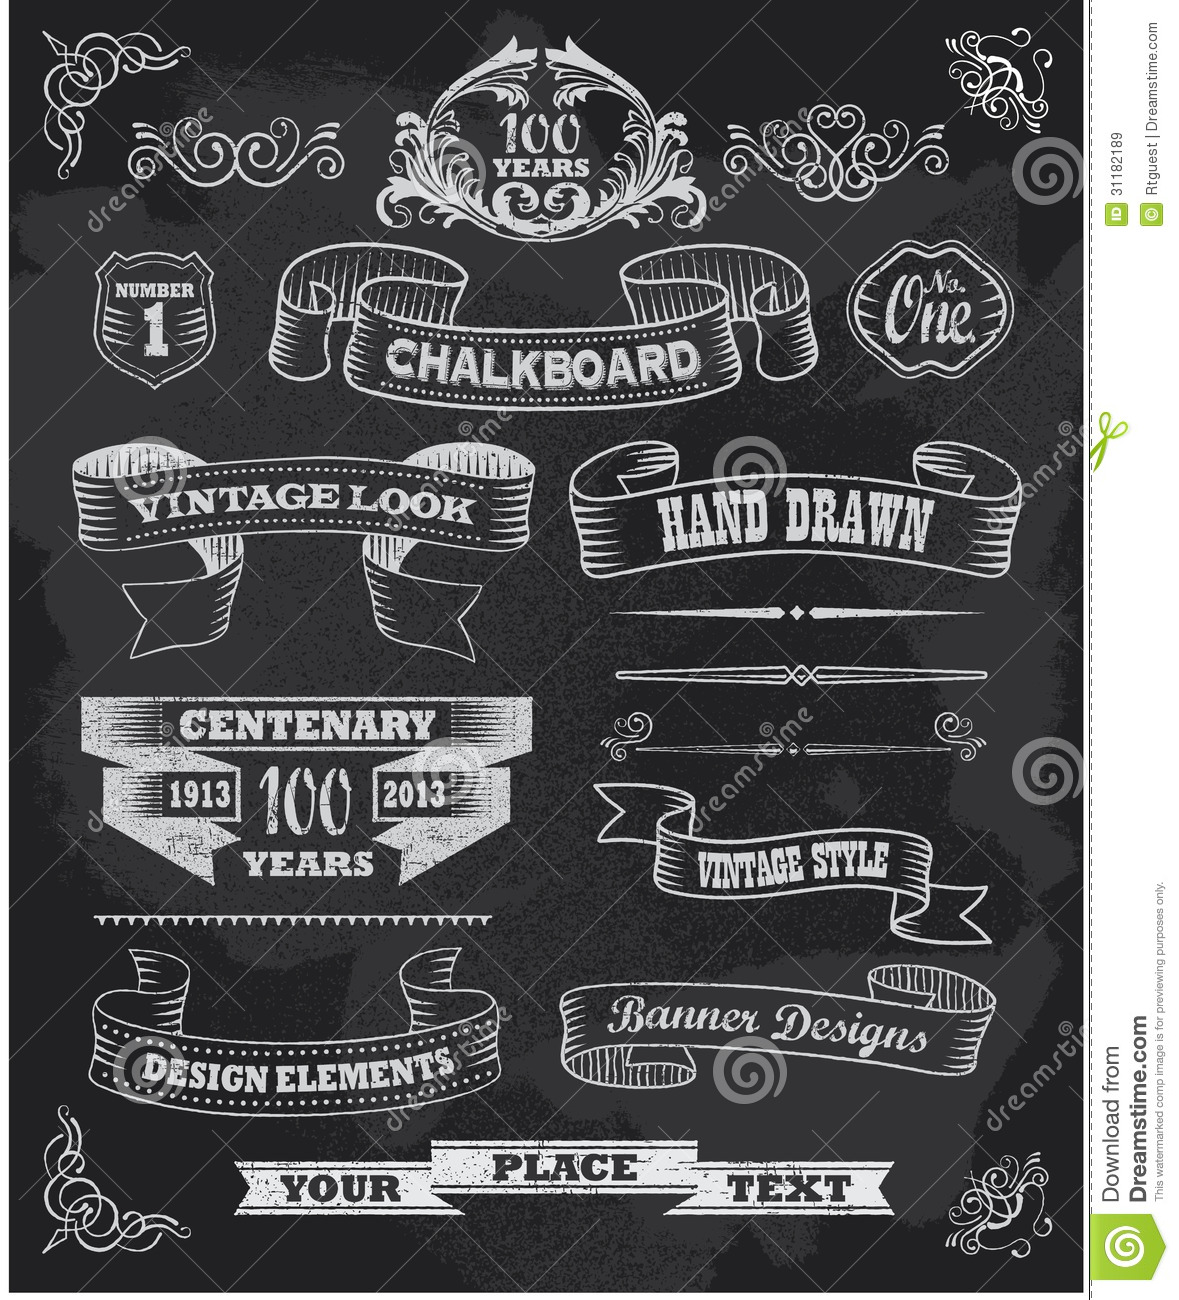 Chalkboard Banners And Ribbons Set On A Black Back Royalty Free Stock ...